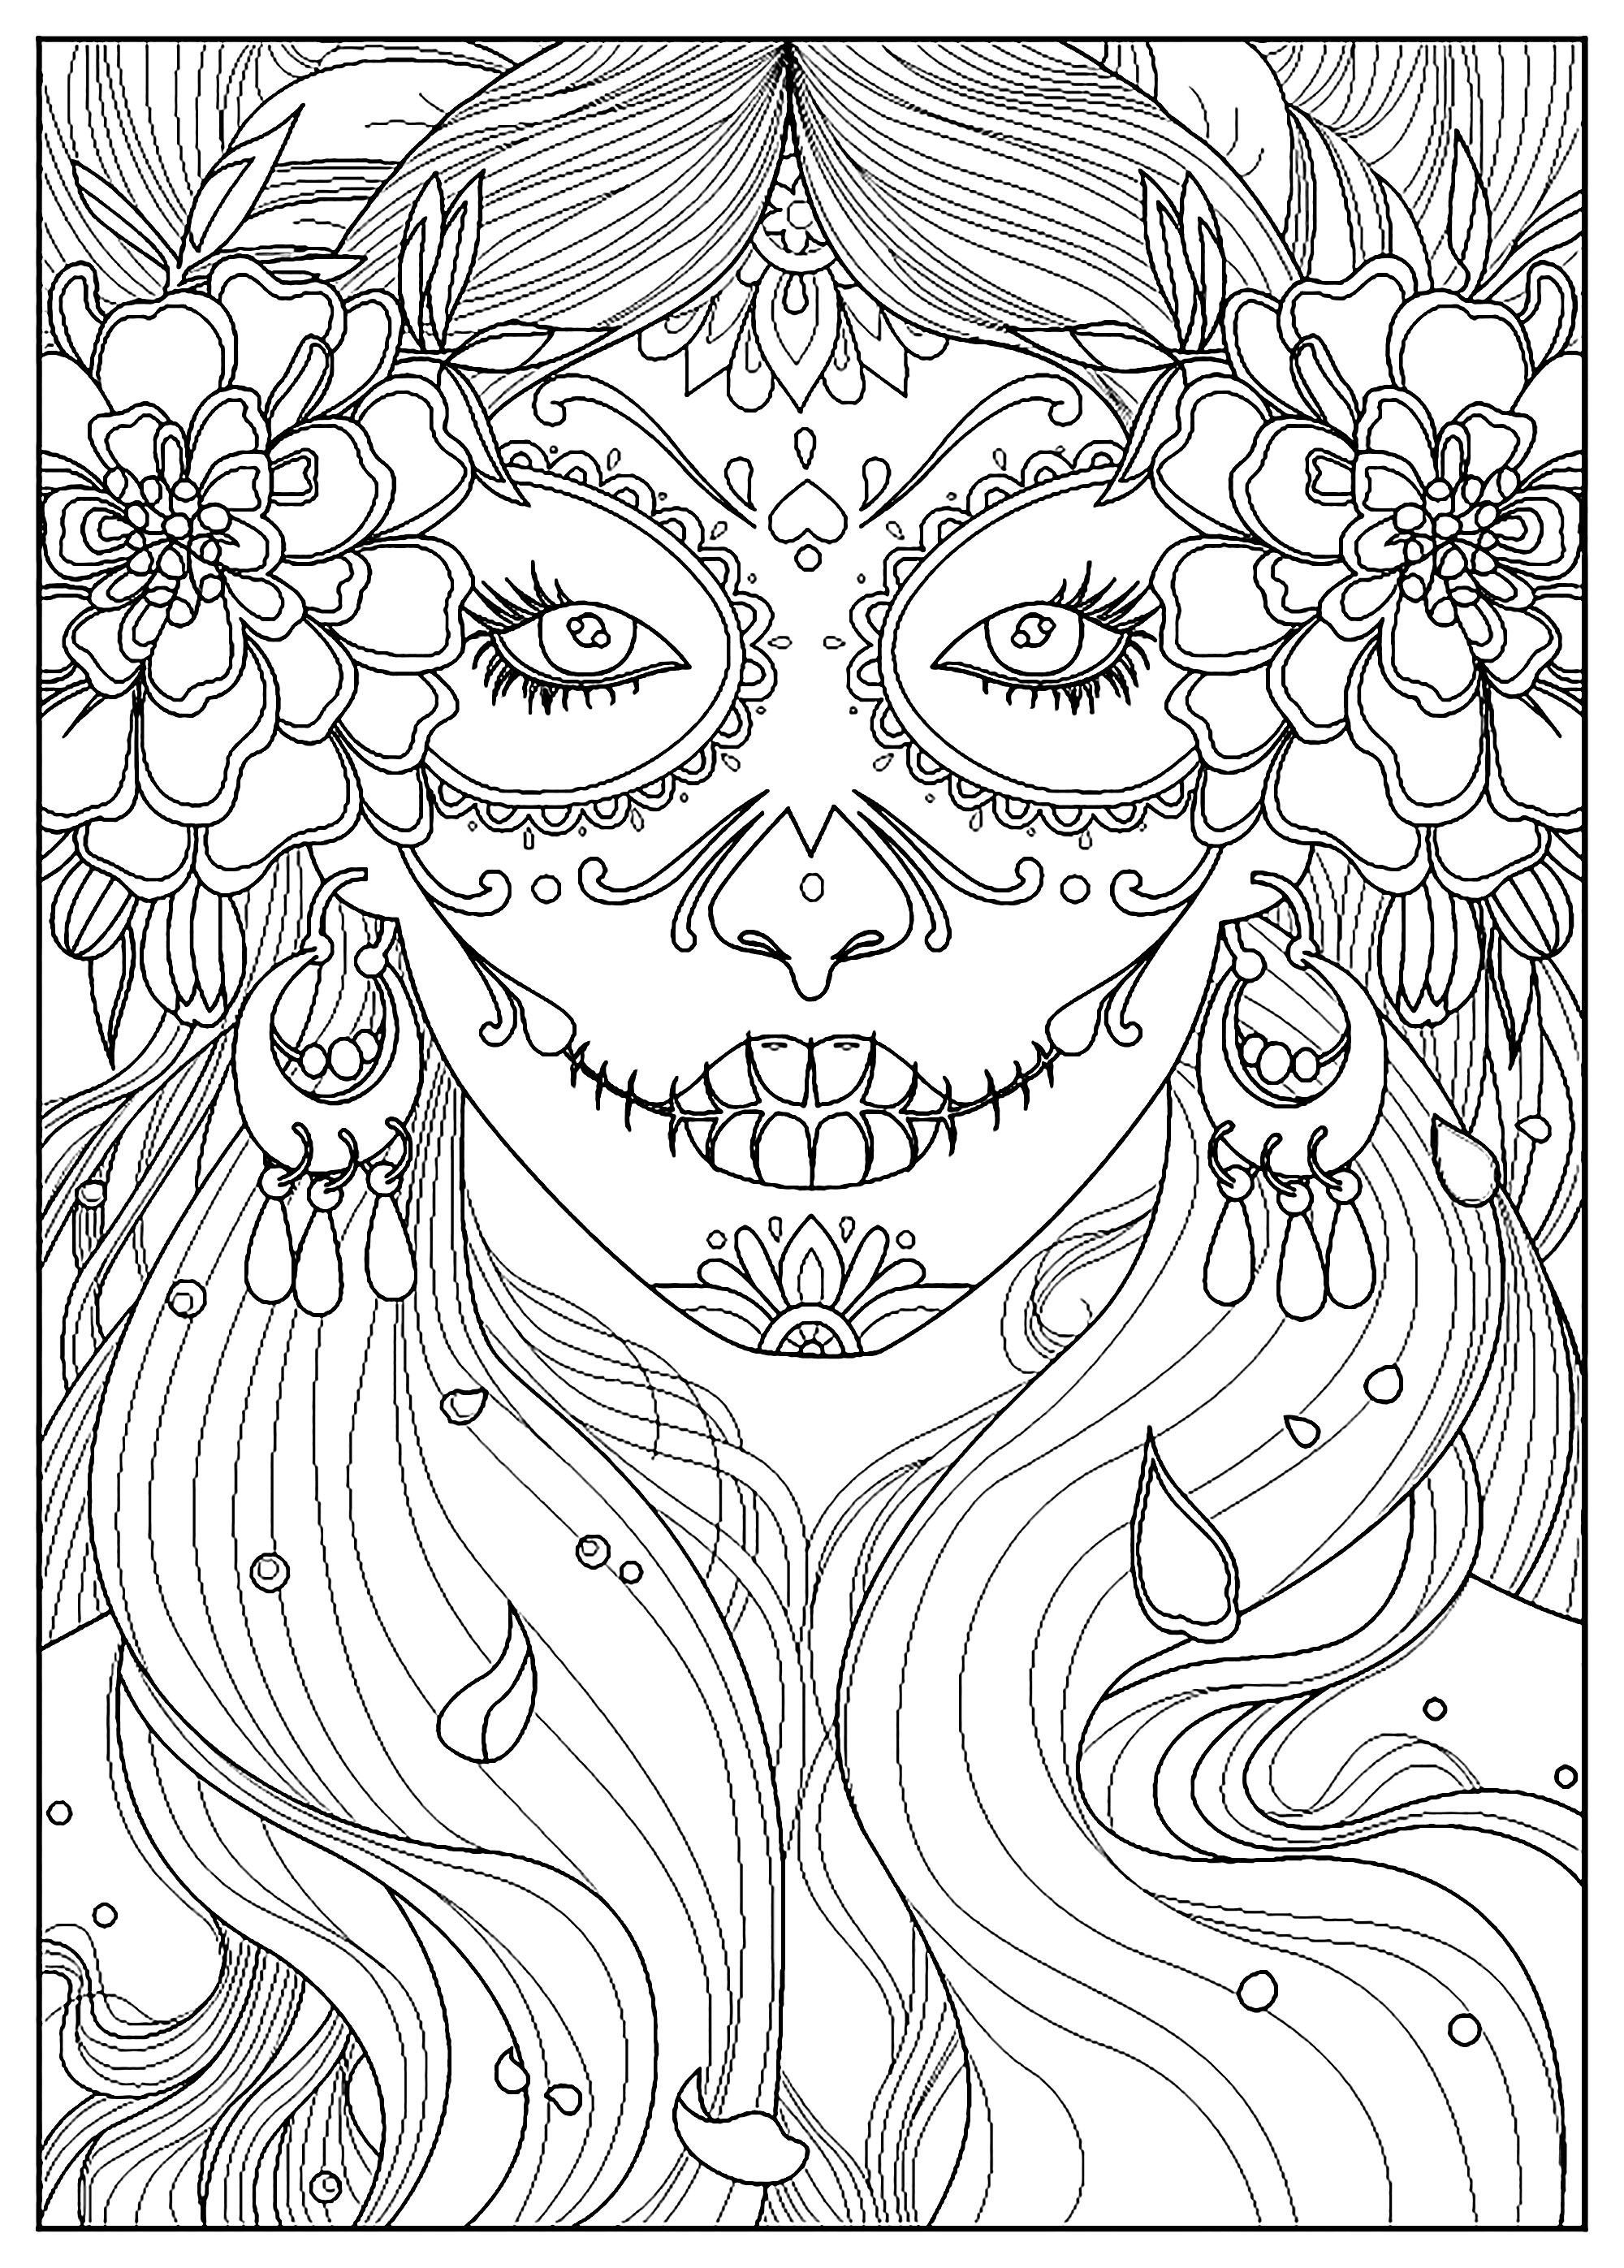 el coloring pages - photo#23